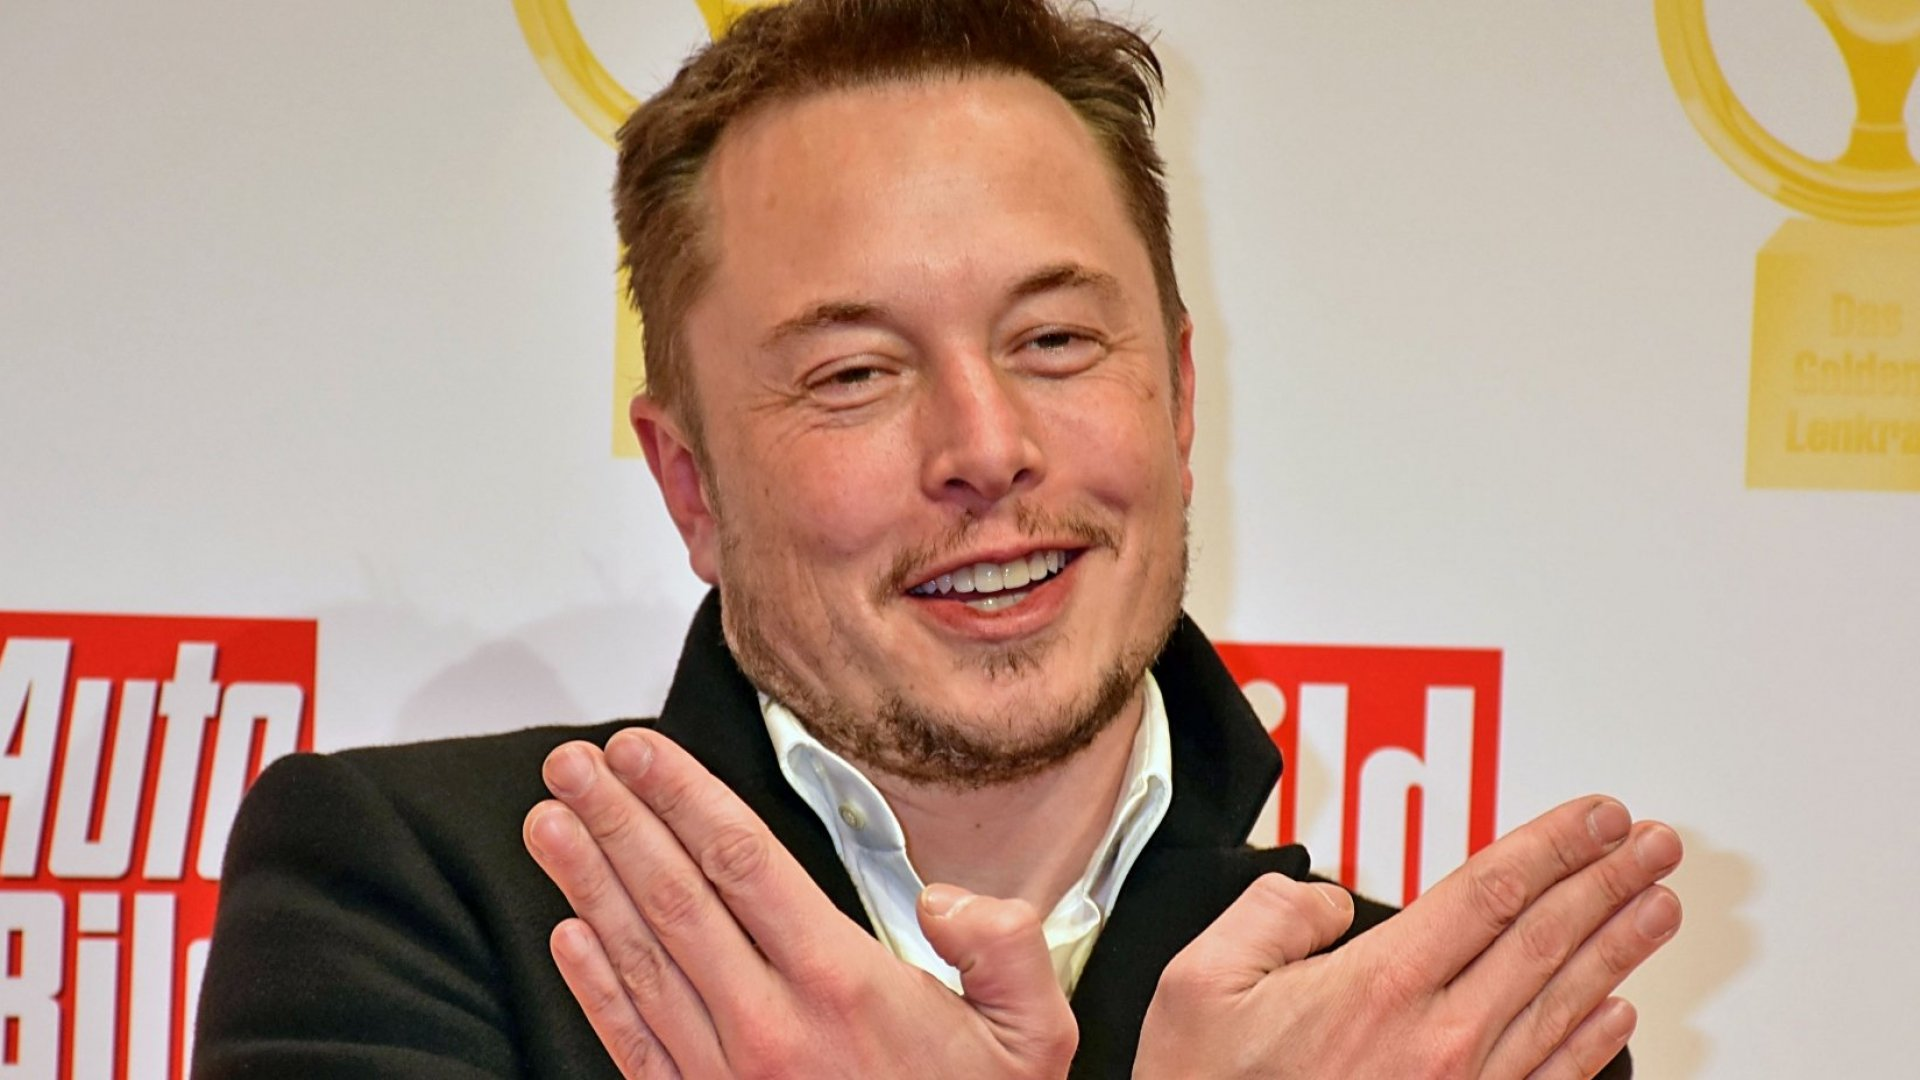 Elon Musk Says to Remember 1 Important Thing When 'Walking Into Doom'